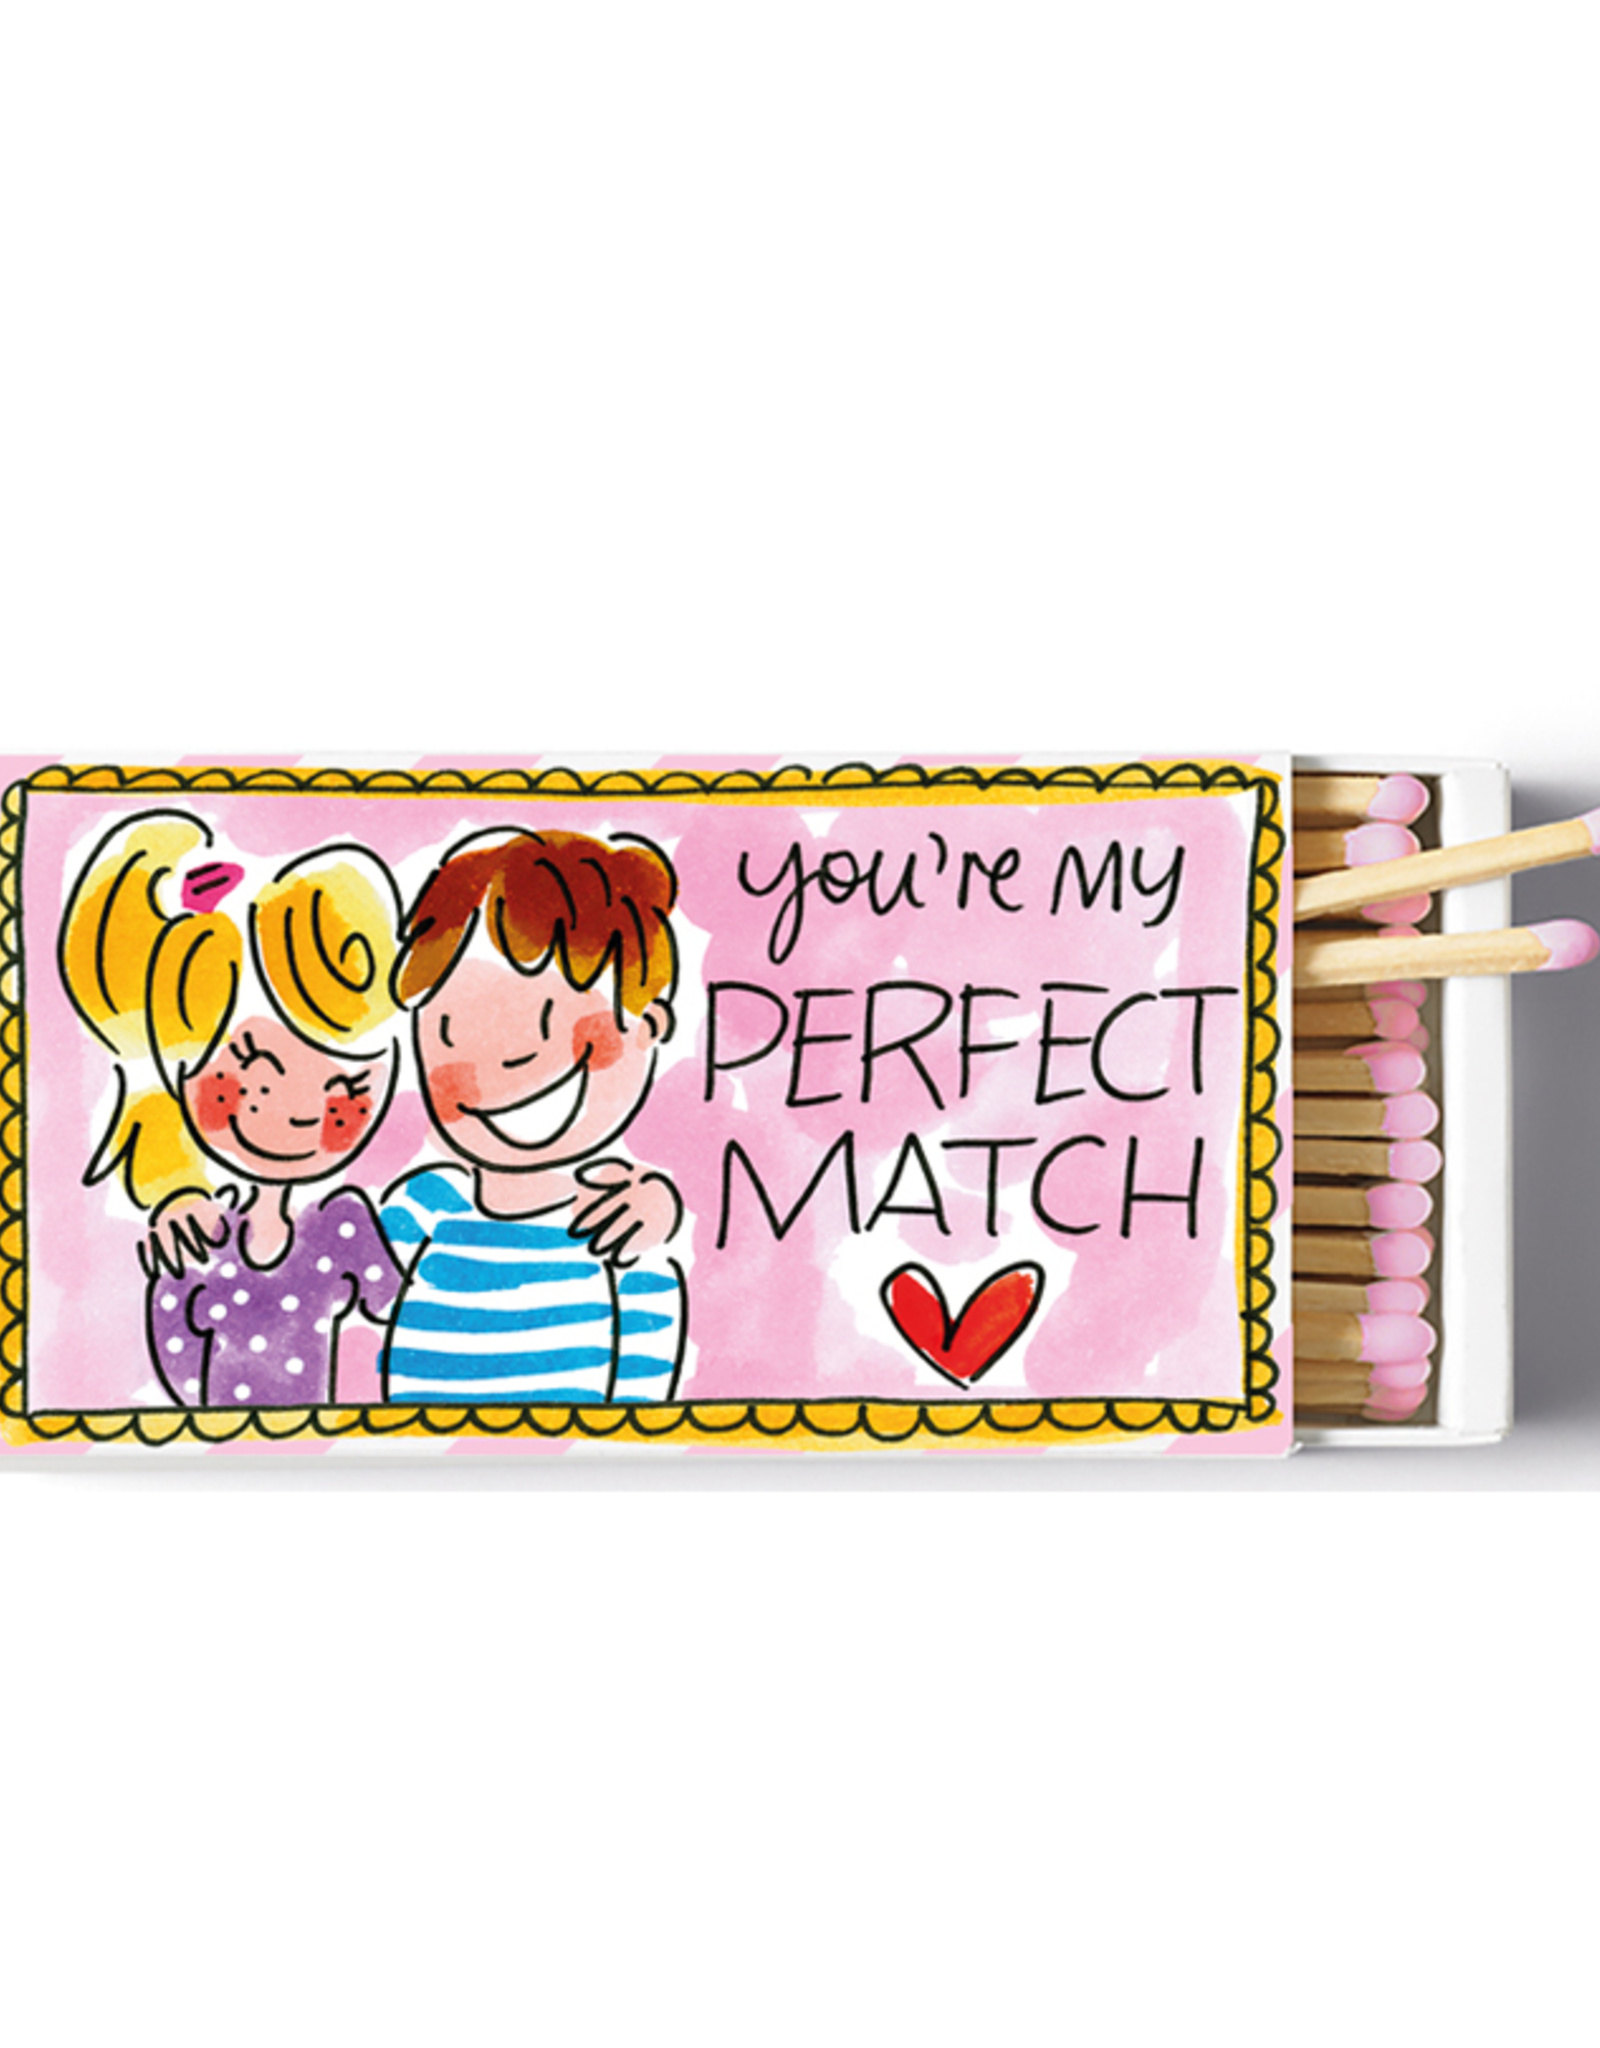 Blond Amsterdam Doos Lucifers You're my Perfect Match - Blond Amsterdam